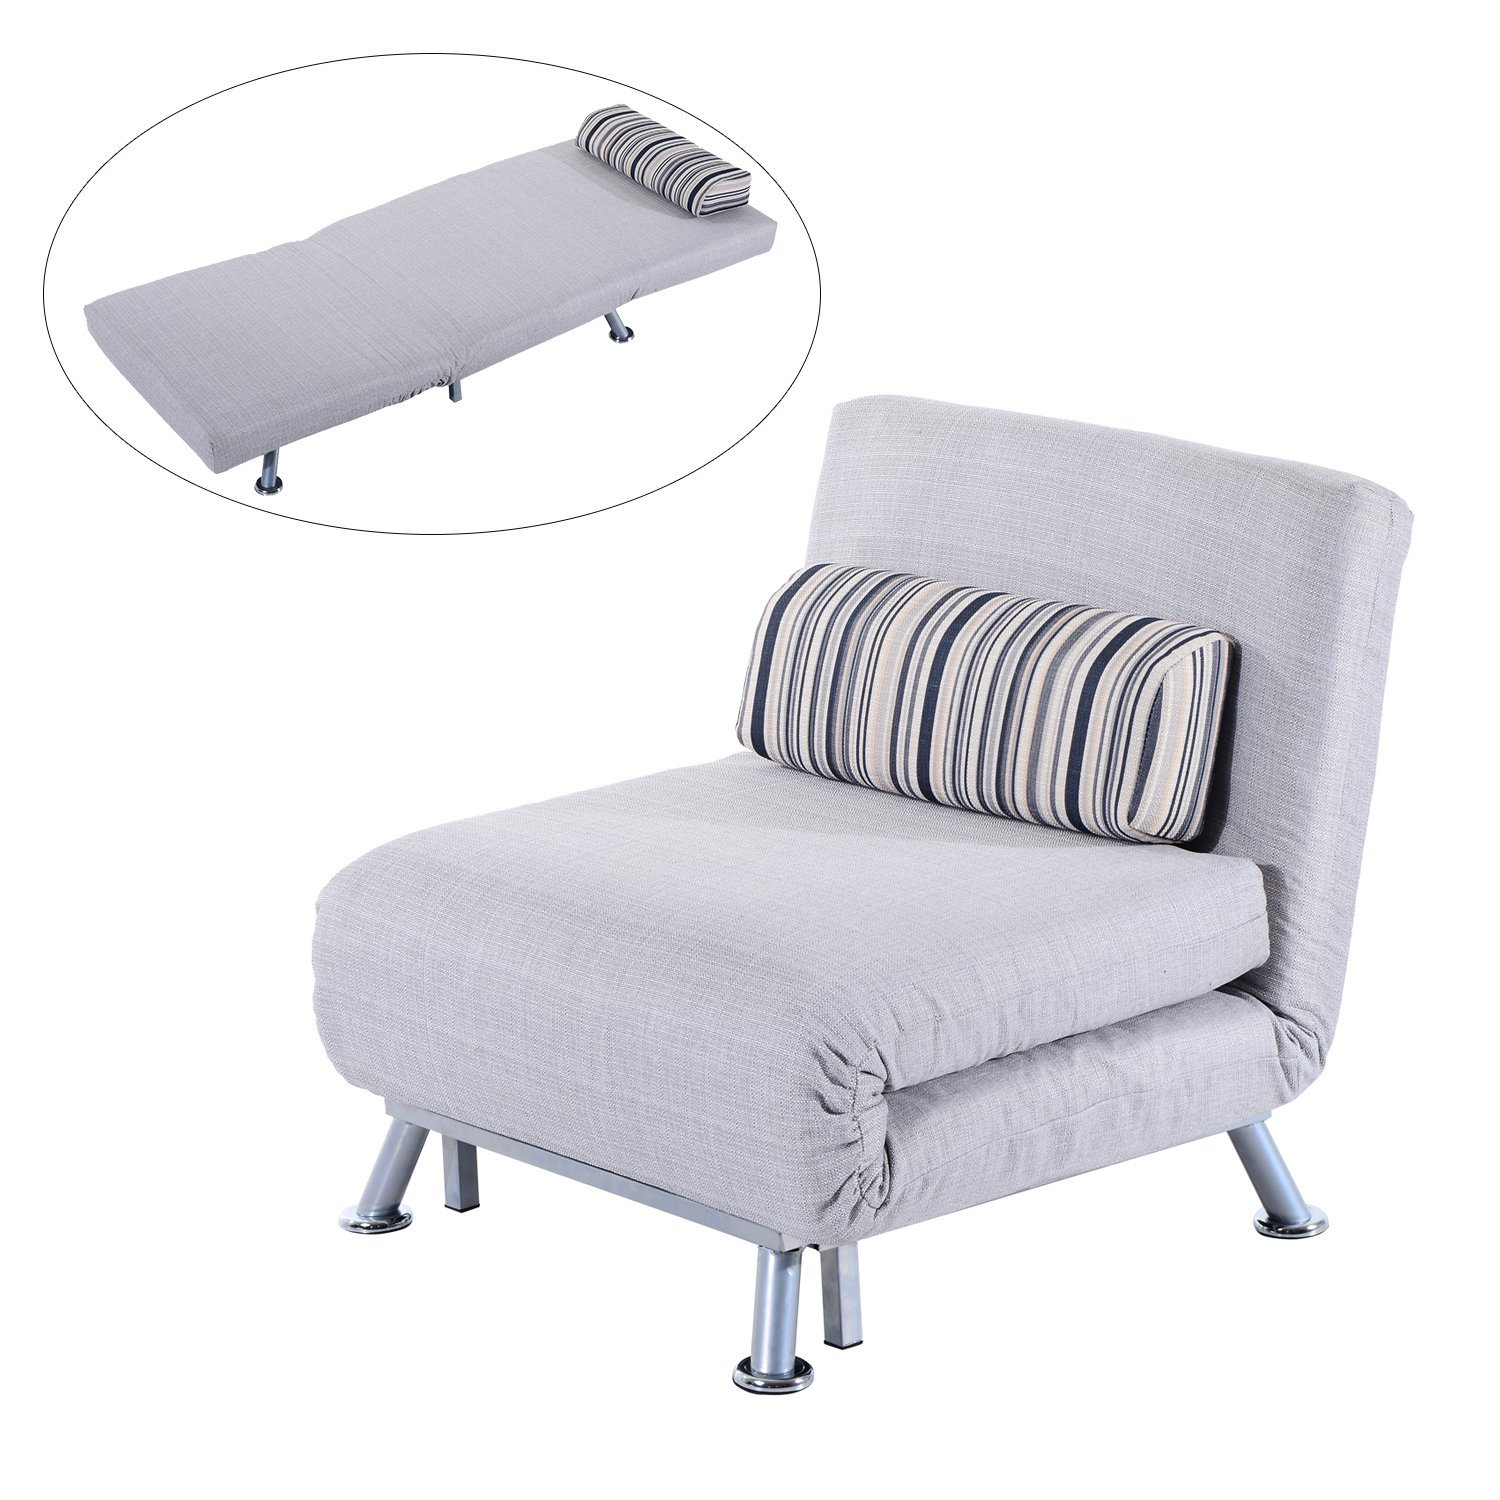 Homcom Fold Out Futon Single Sofa Bed